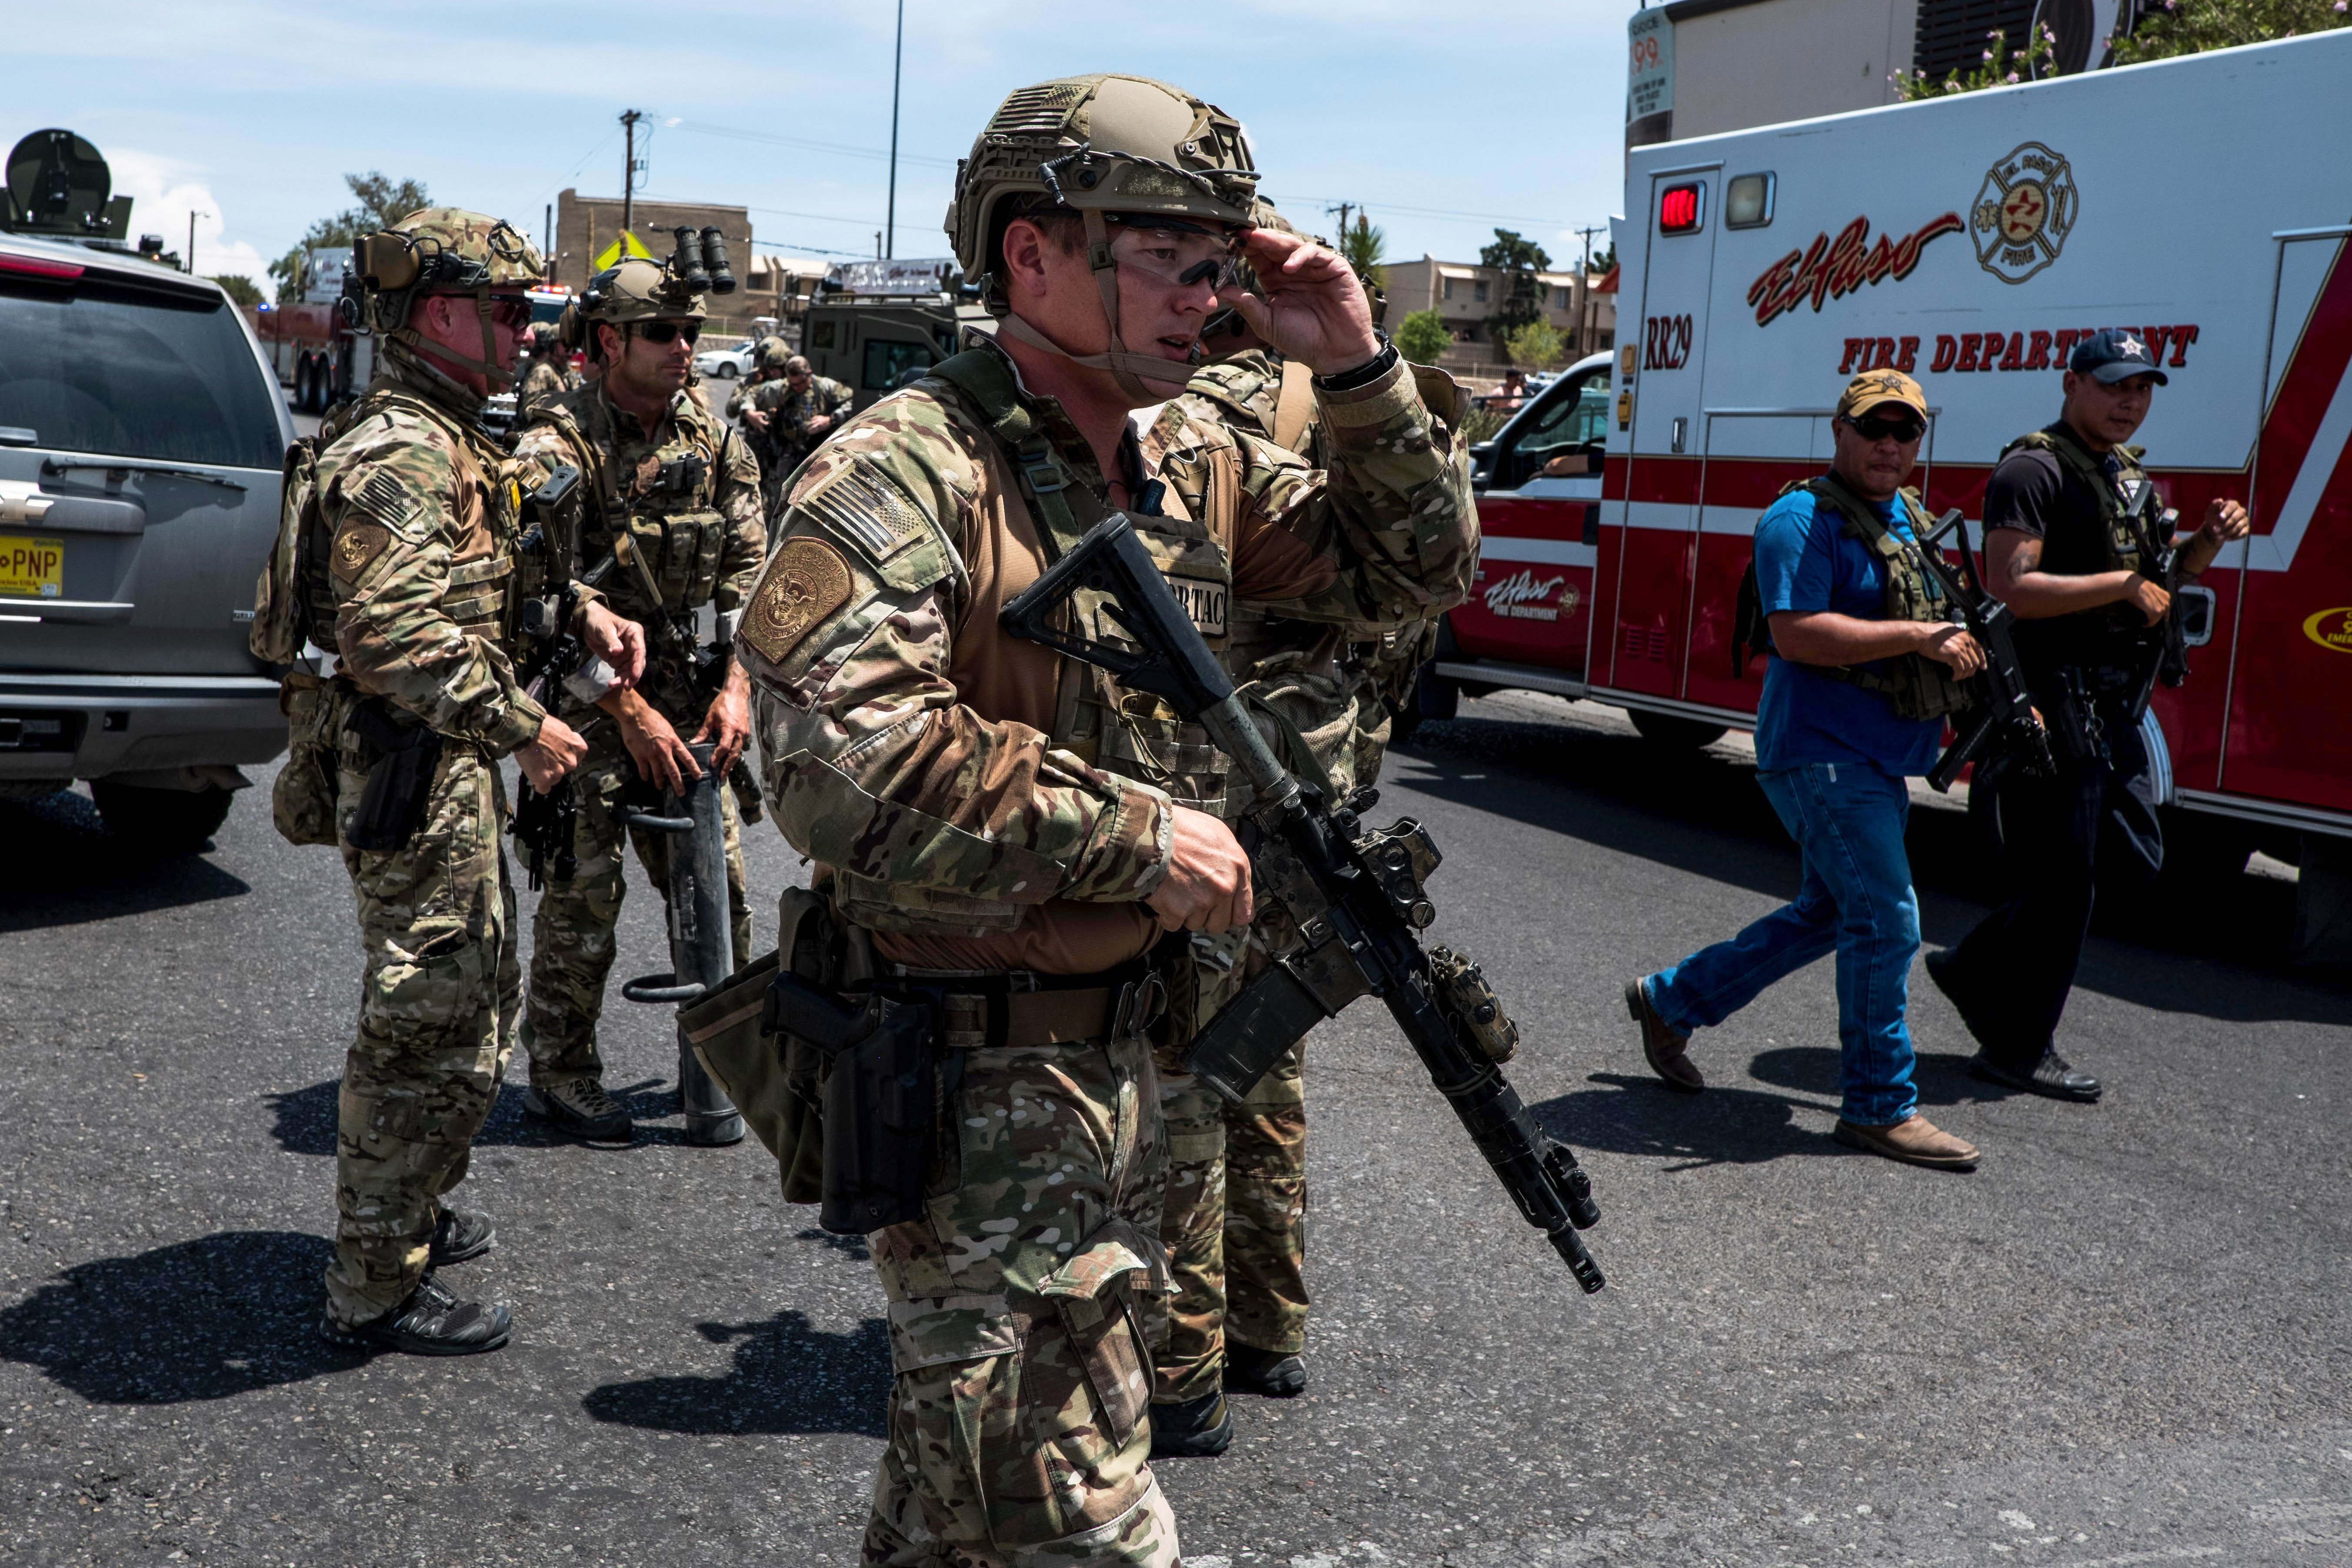 """Law enforcement agencies respond to an active shooter at a Wal-Mart near Cielo Vista Mall in El Paso, Texas, Saturday, Aug. 3, 2019. - Police said there may be more than one suspect involved in an active shooter situation Saturday in El Paso, Texas. City police said on Twitter they had received """"multi reports of multipe shooters."""" There was no immediate word on casualties. / JOEL ANGEL JUAREZ/AFP/Getty Images"""